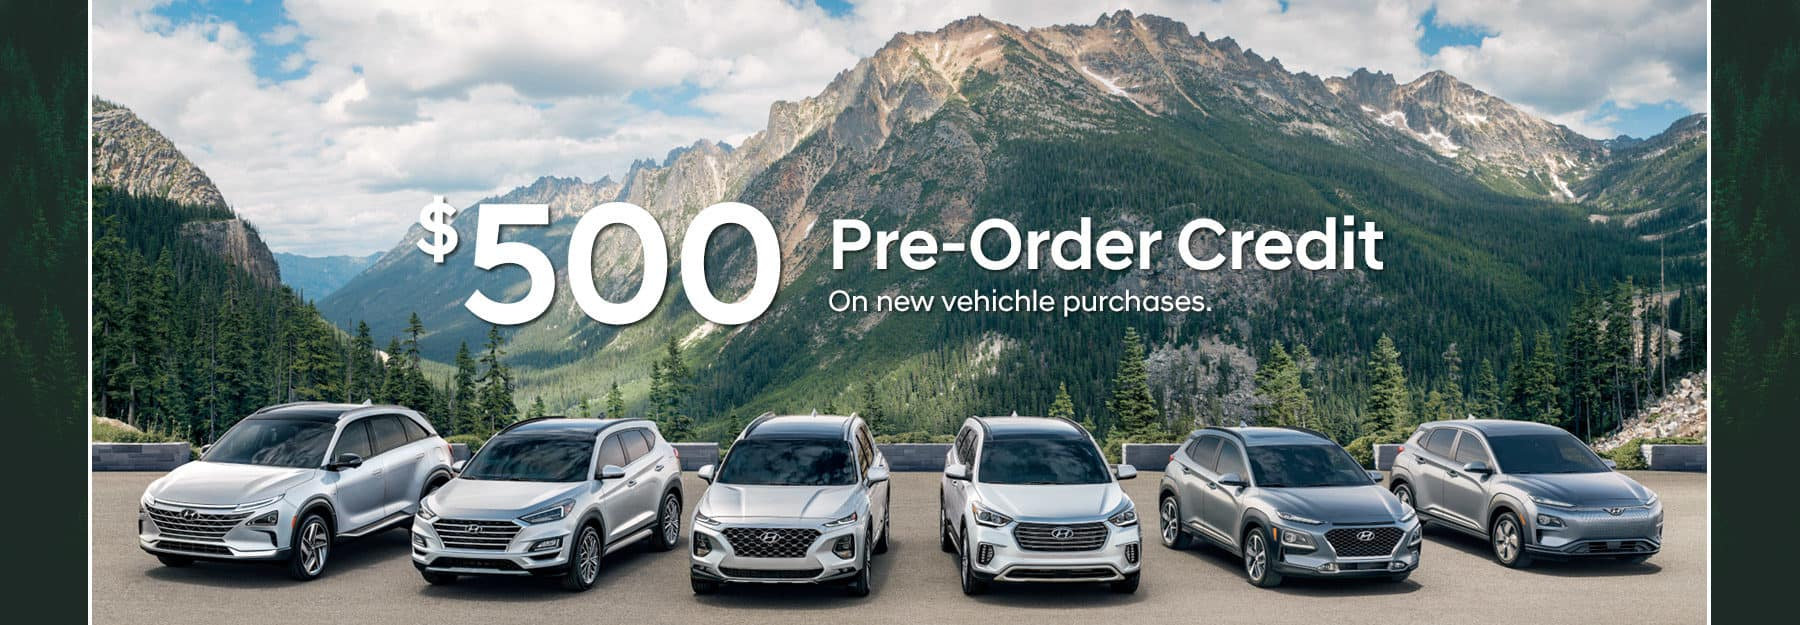 $500 Pre-Order Credit on all new vehicle purchases.